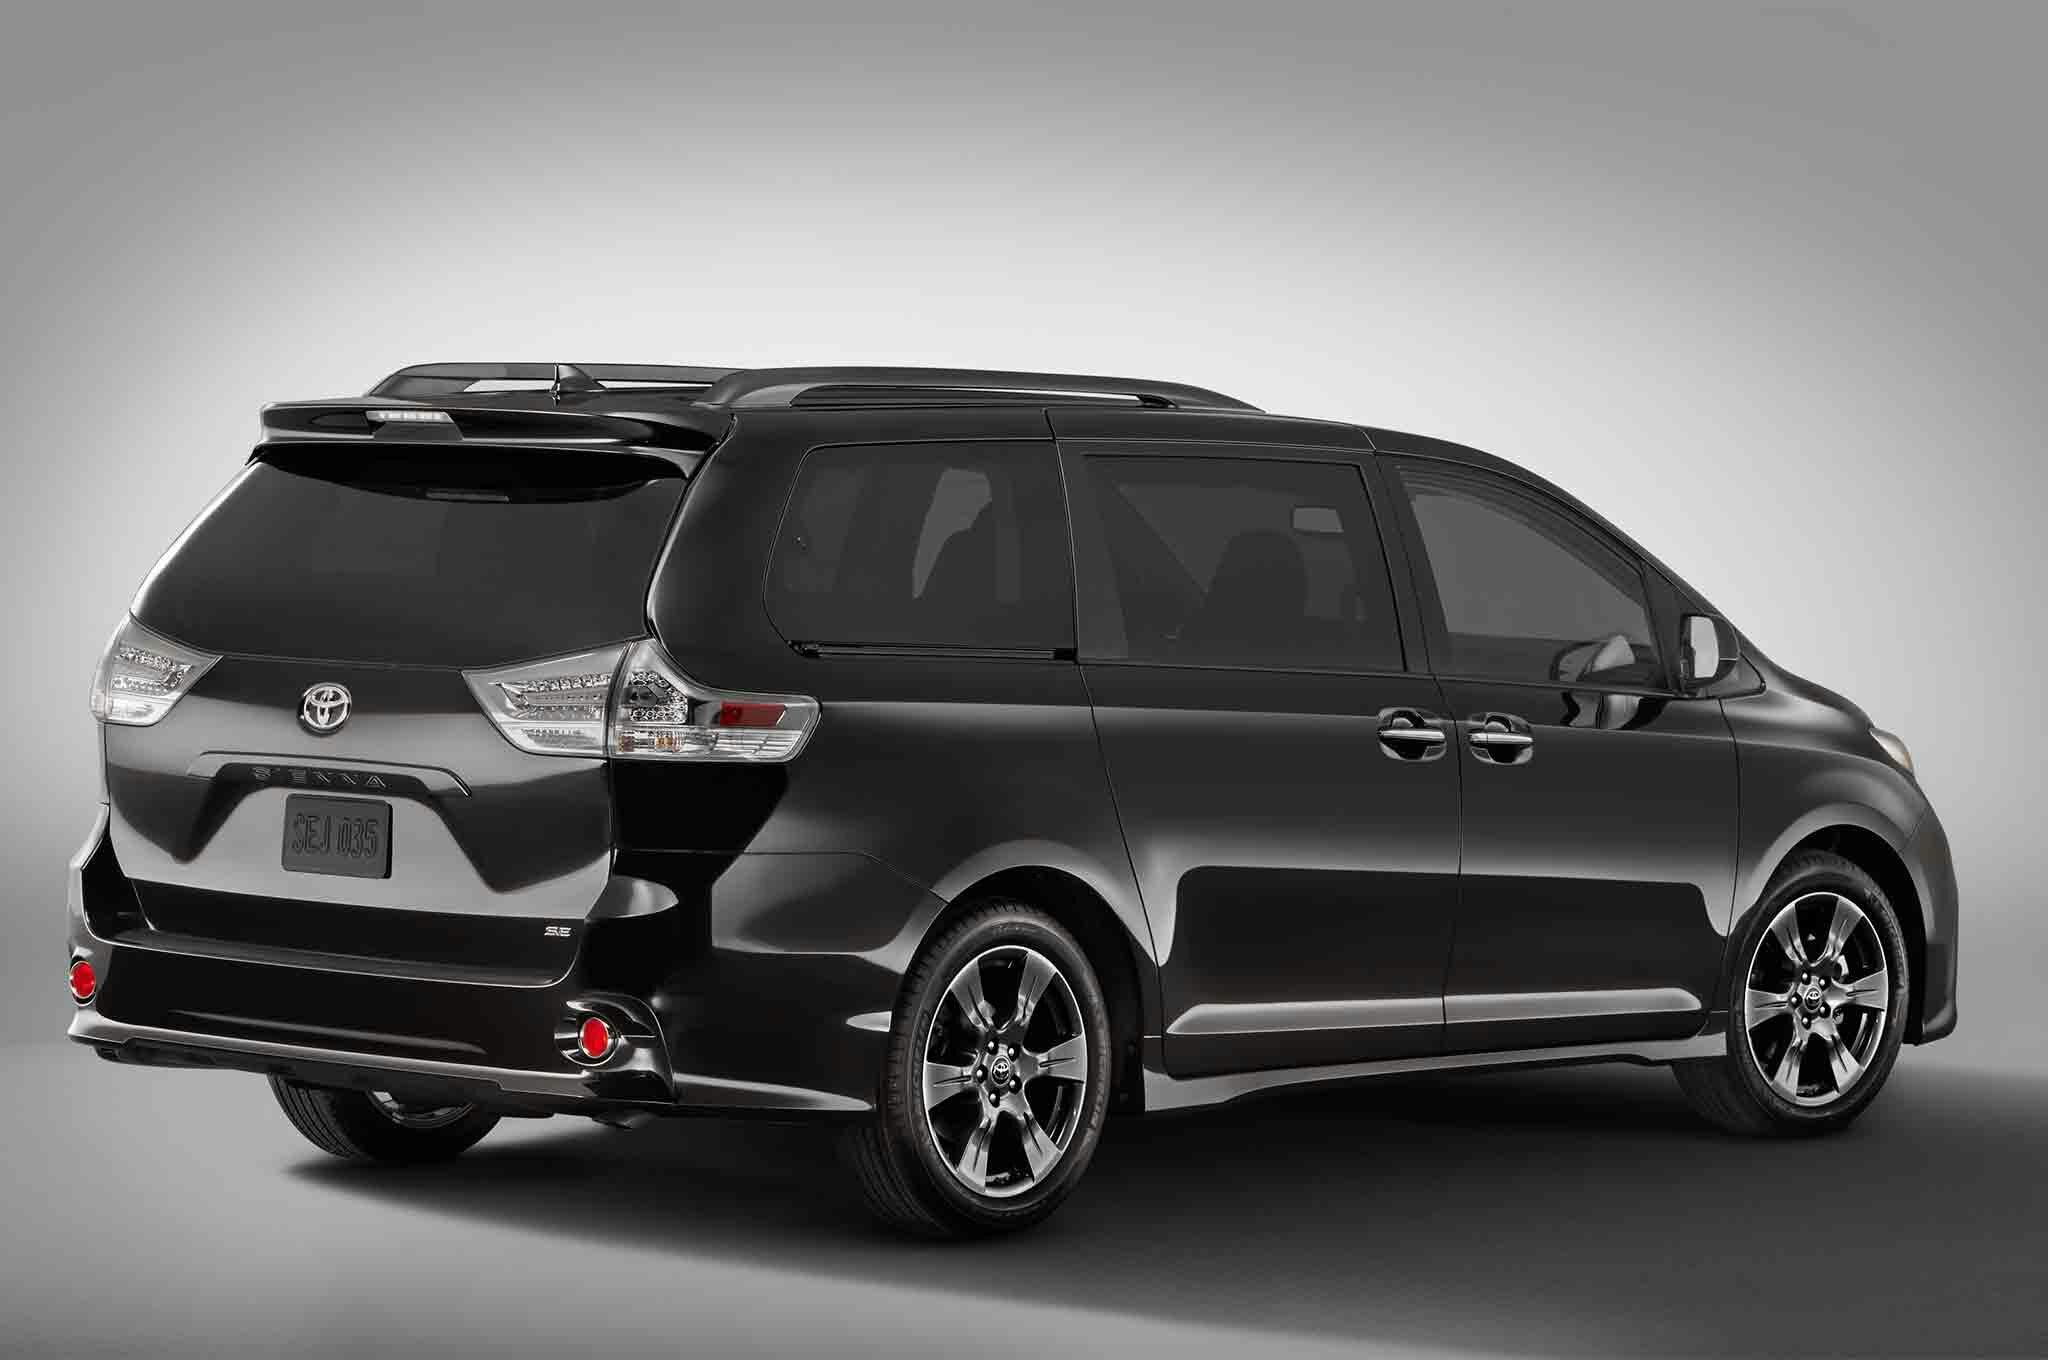 Toyota Sienna Service Manual: How to proceed withtroubleshooting